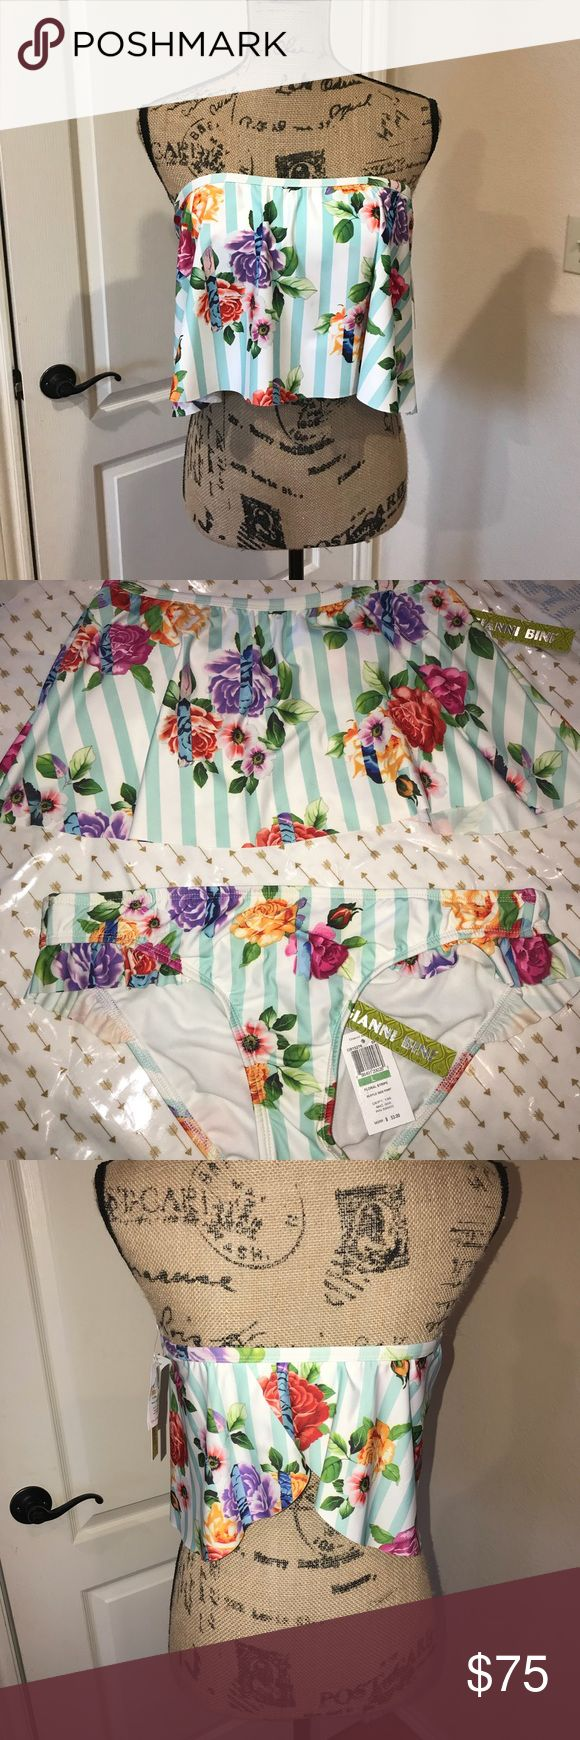 Gianni Bini two piece swimsuit Adorable two piece swimsuit, brand new with tags still attached! The bottoms are a size large and the top is a size small. The top is also padded but the padding can be removed. The sanitation sticker is not on the bottoms however they are brand new and still have tags as well. Each piece retailed for over 50.00! Purchased from Dillard's department store.   ❌NO TRADES PRICE IS FIRM Gianni Bini Swim Bikinis